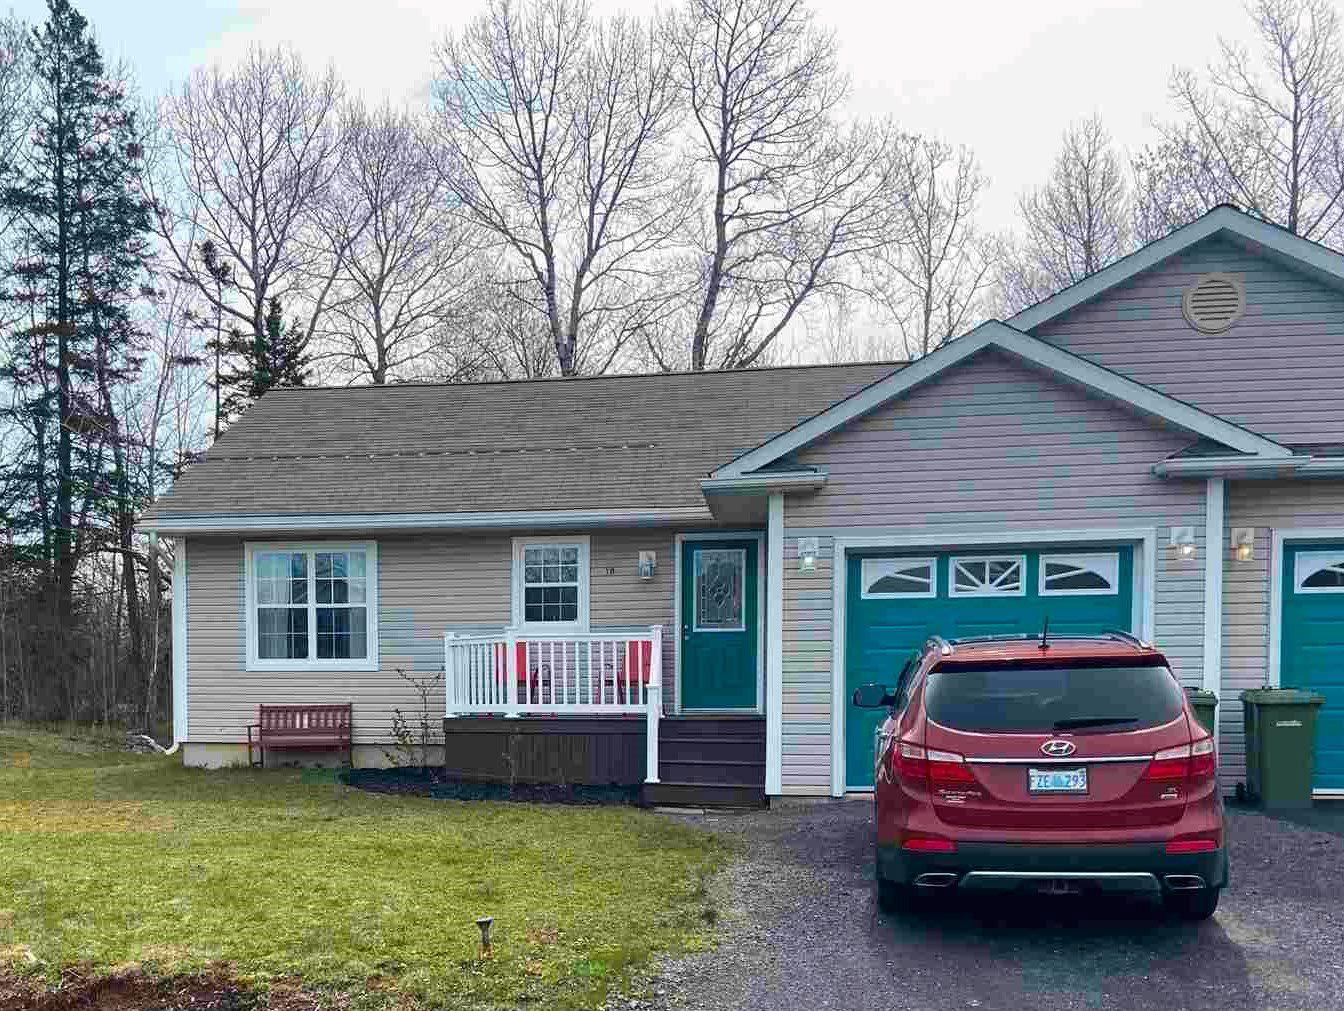 Main Photo: 18 Munroe Heights in Pictou County: 108-Rural Pictou County Residential for sale (Northern Region)  : MLS®# 202111522